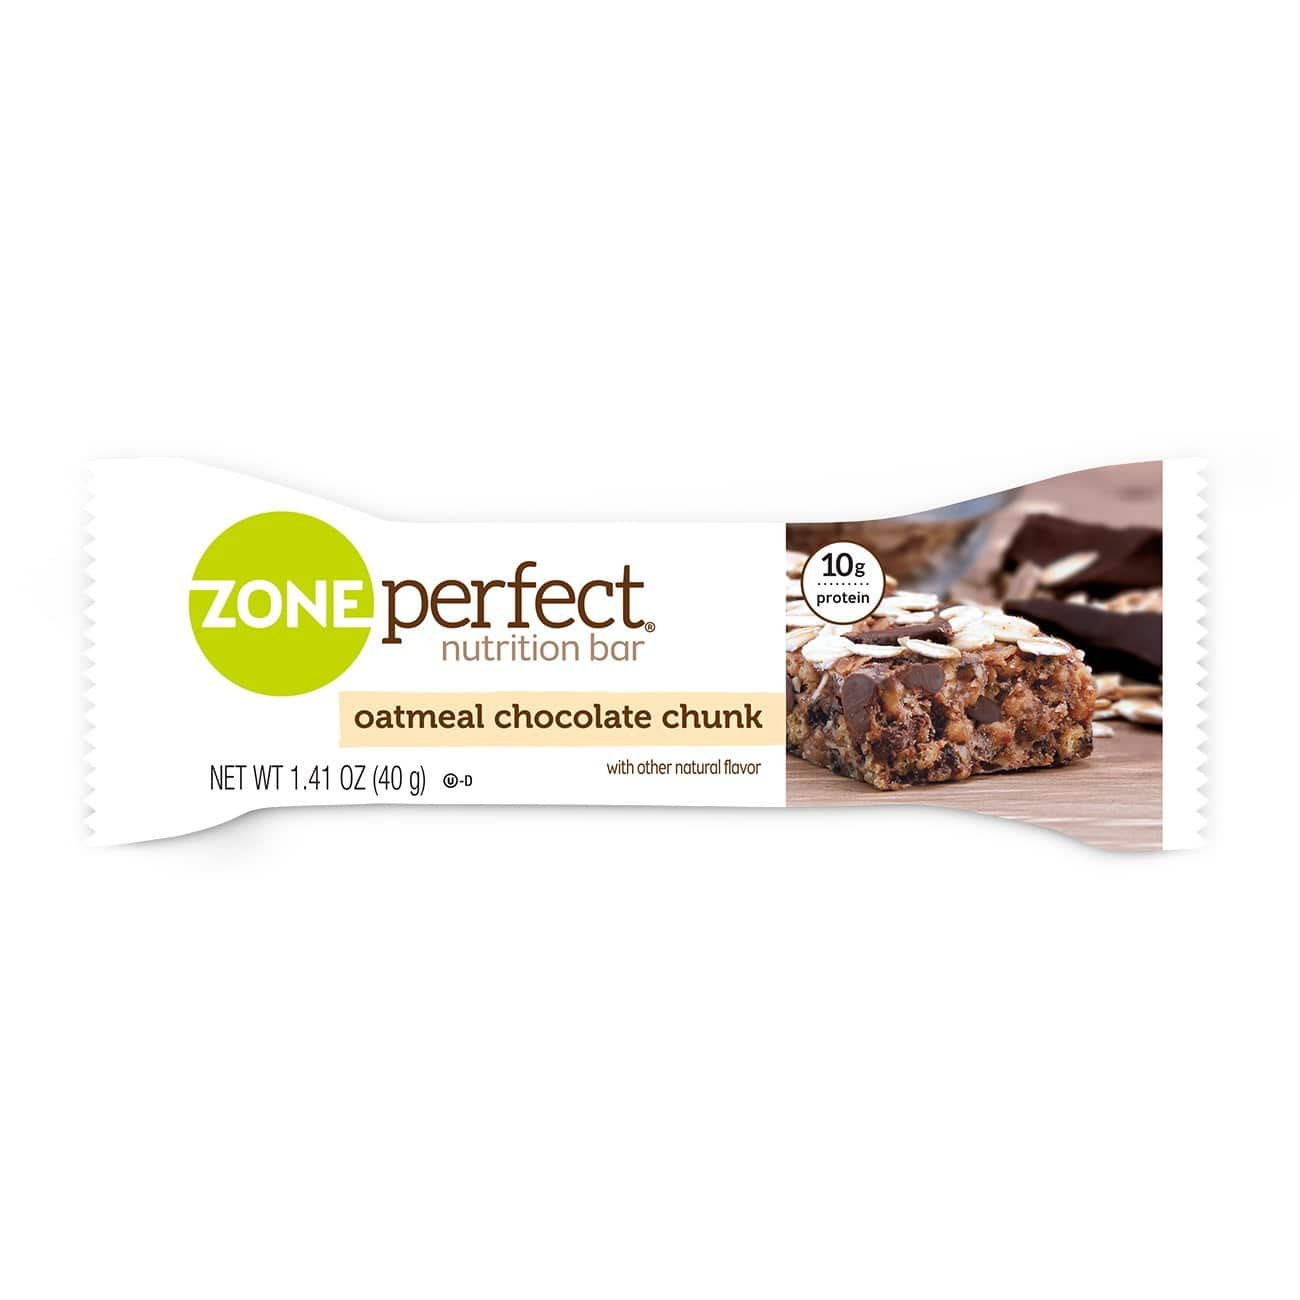 ZonePerfect Nutrition Snack Bars, Salted Caramel Brownie, 1.58 oz, (30 Count) for $12.64 ($0.42 / Count) @amazon with S & S